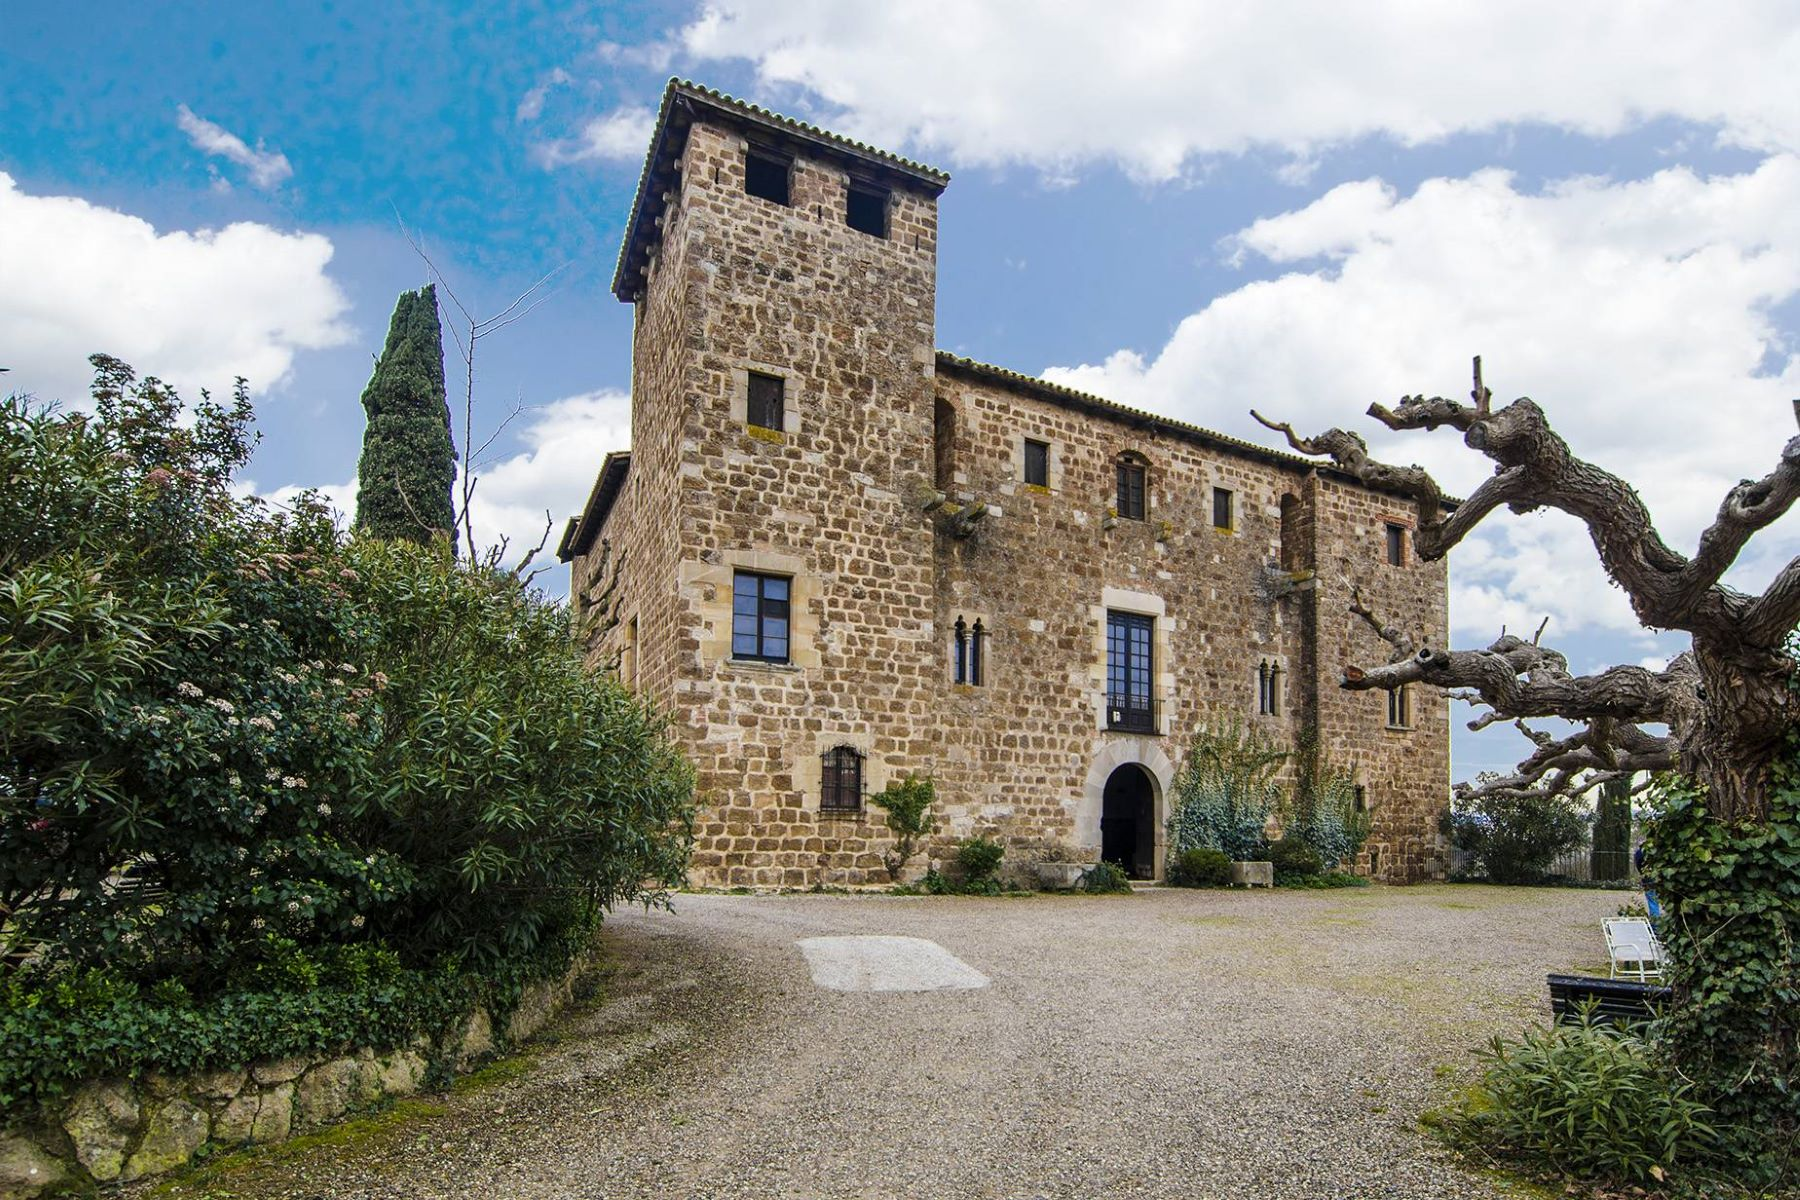 Single Family Home for Sale at Impressive fortified castle only 15 minutes from Barcelona Sant Cugat Del Valles, Barcelona, 08172 Spain